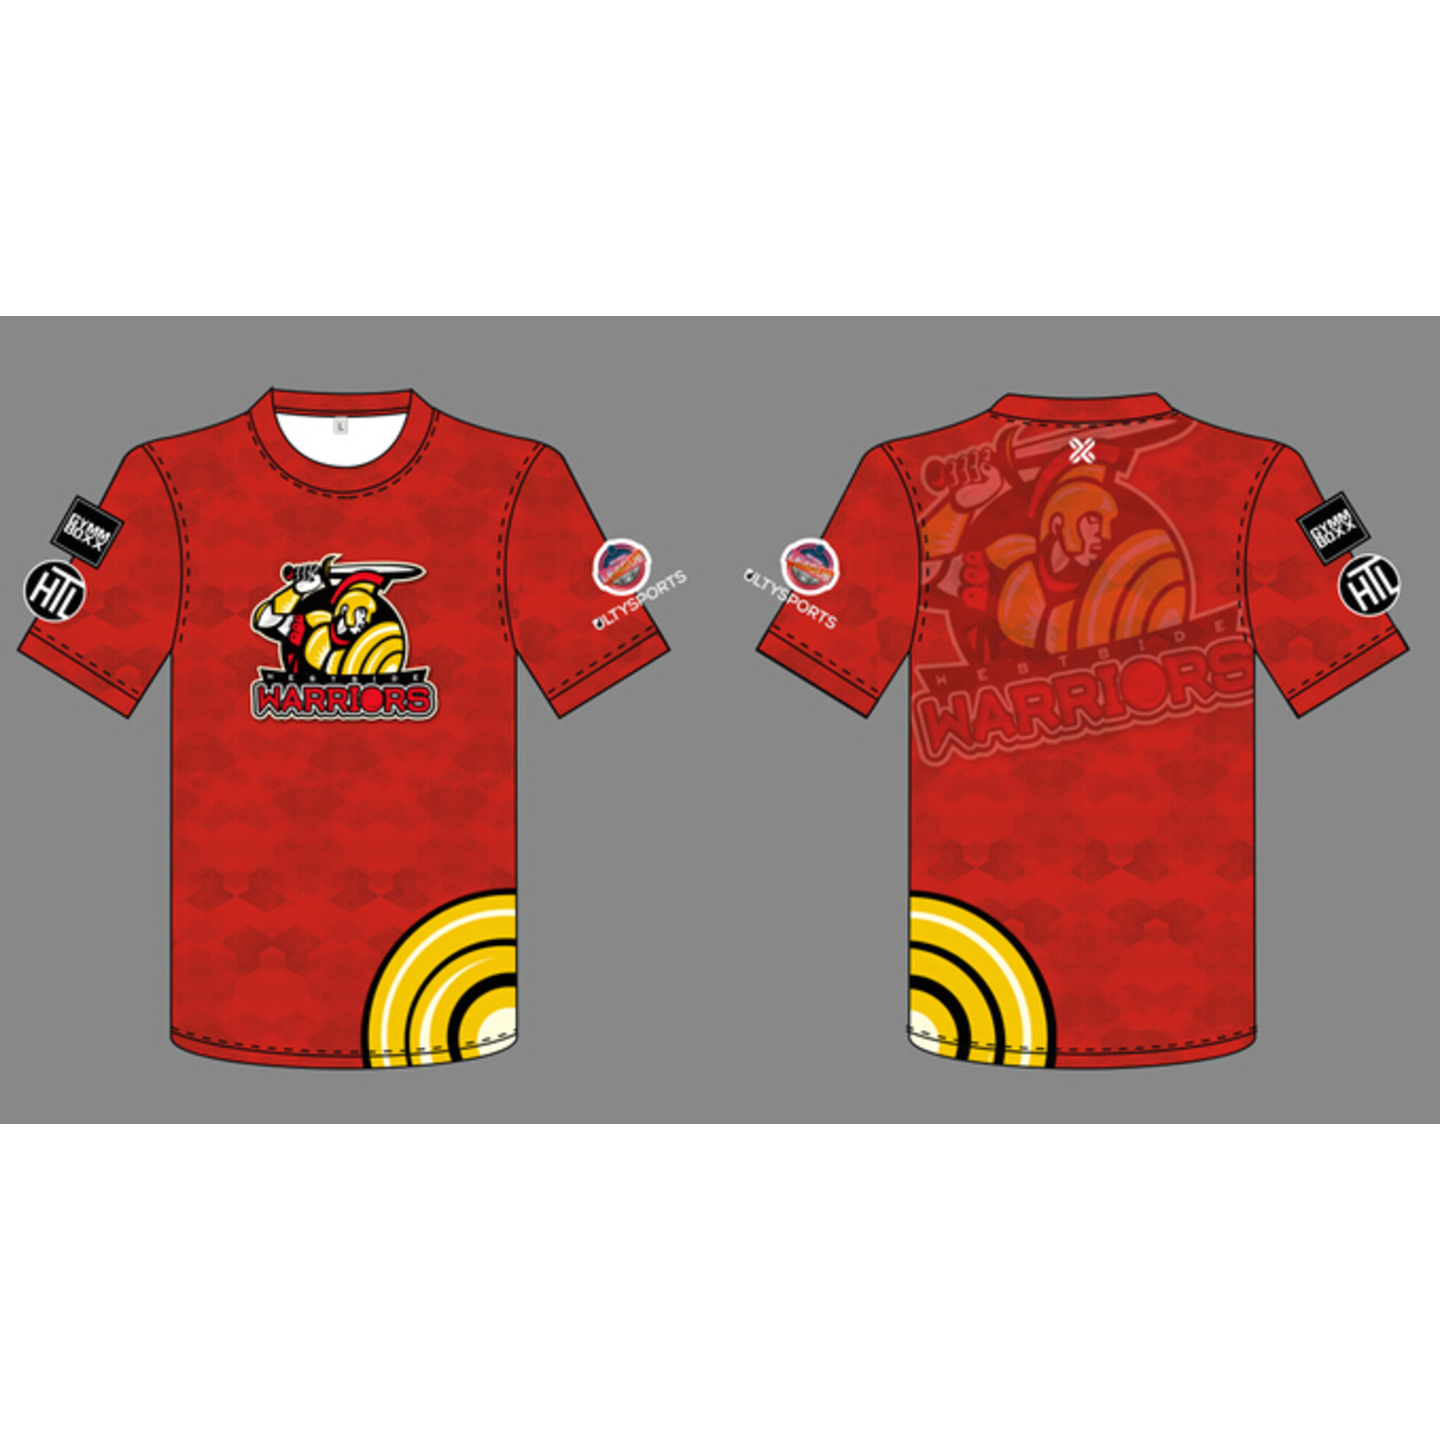 Elite League Jersey